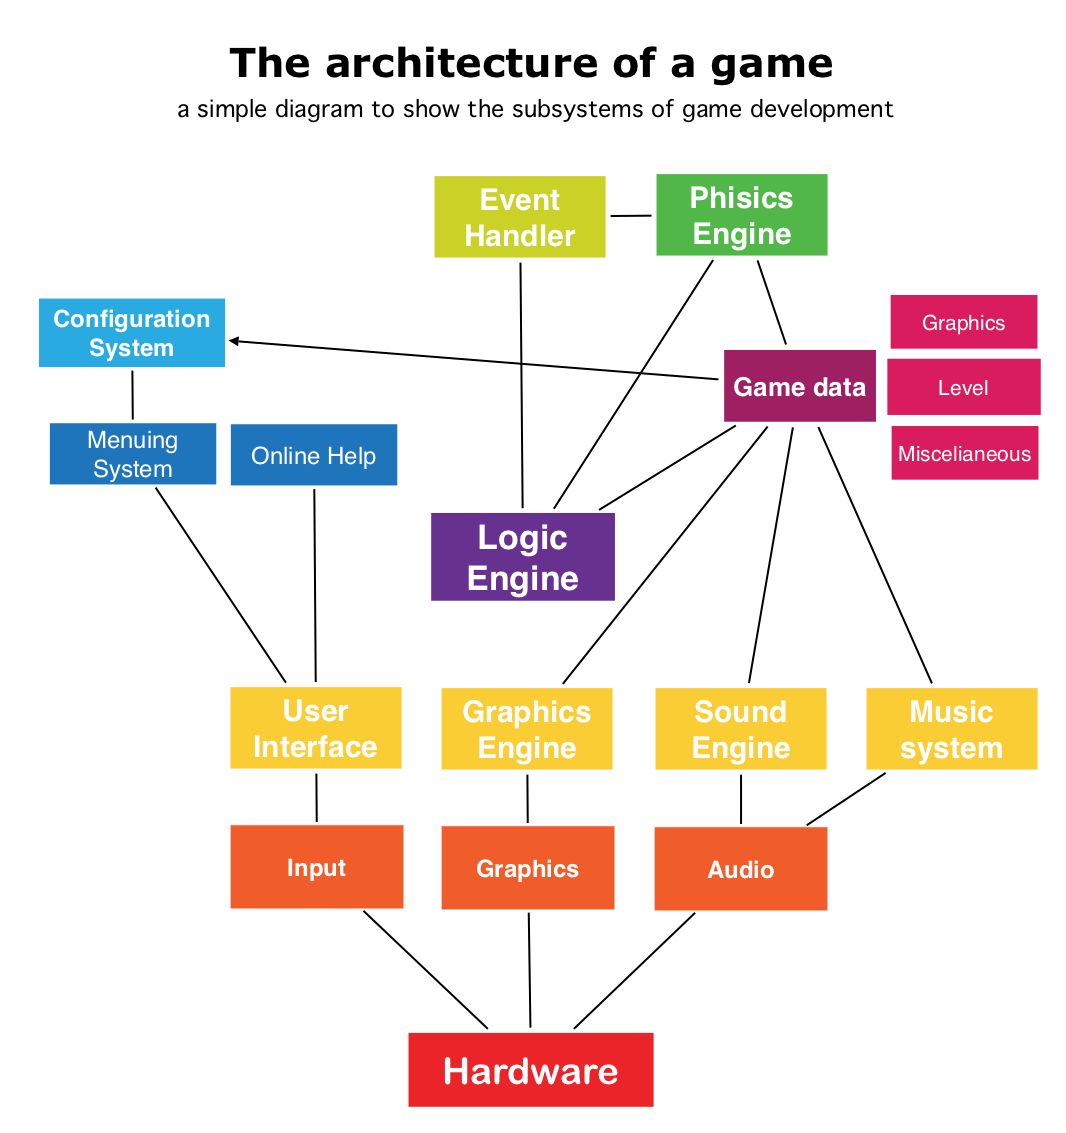 Designing Software Using Grafio Ten Touch Medium Level 0 Block Diagram Use To Create Overview Of Your Entire Architecture Divided By Modules The Connections Between Them Mark Used Libraries